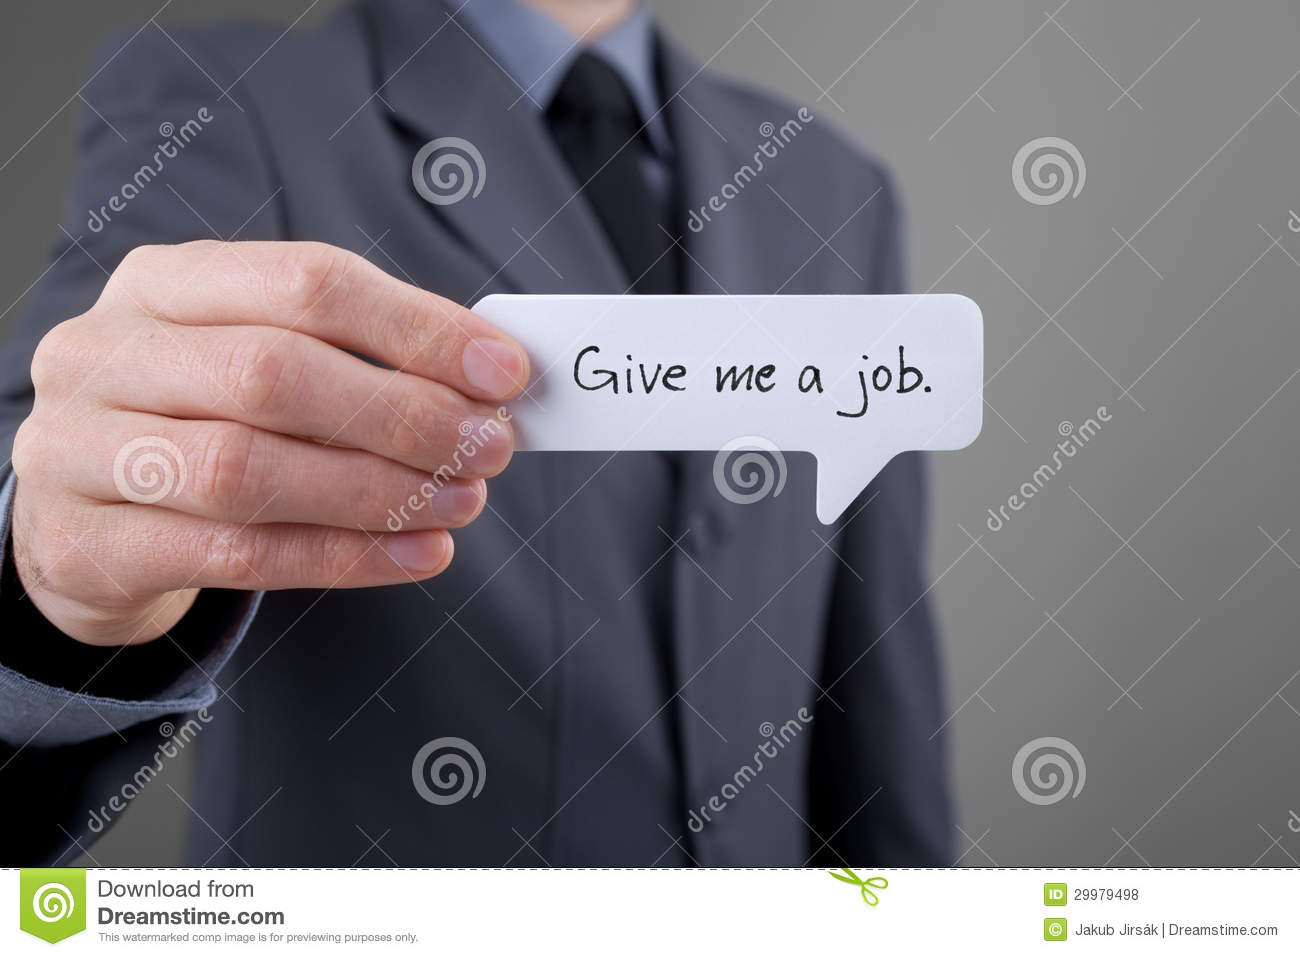 Unemployed Person Give me a job Royalty Free